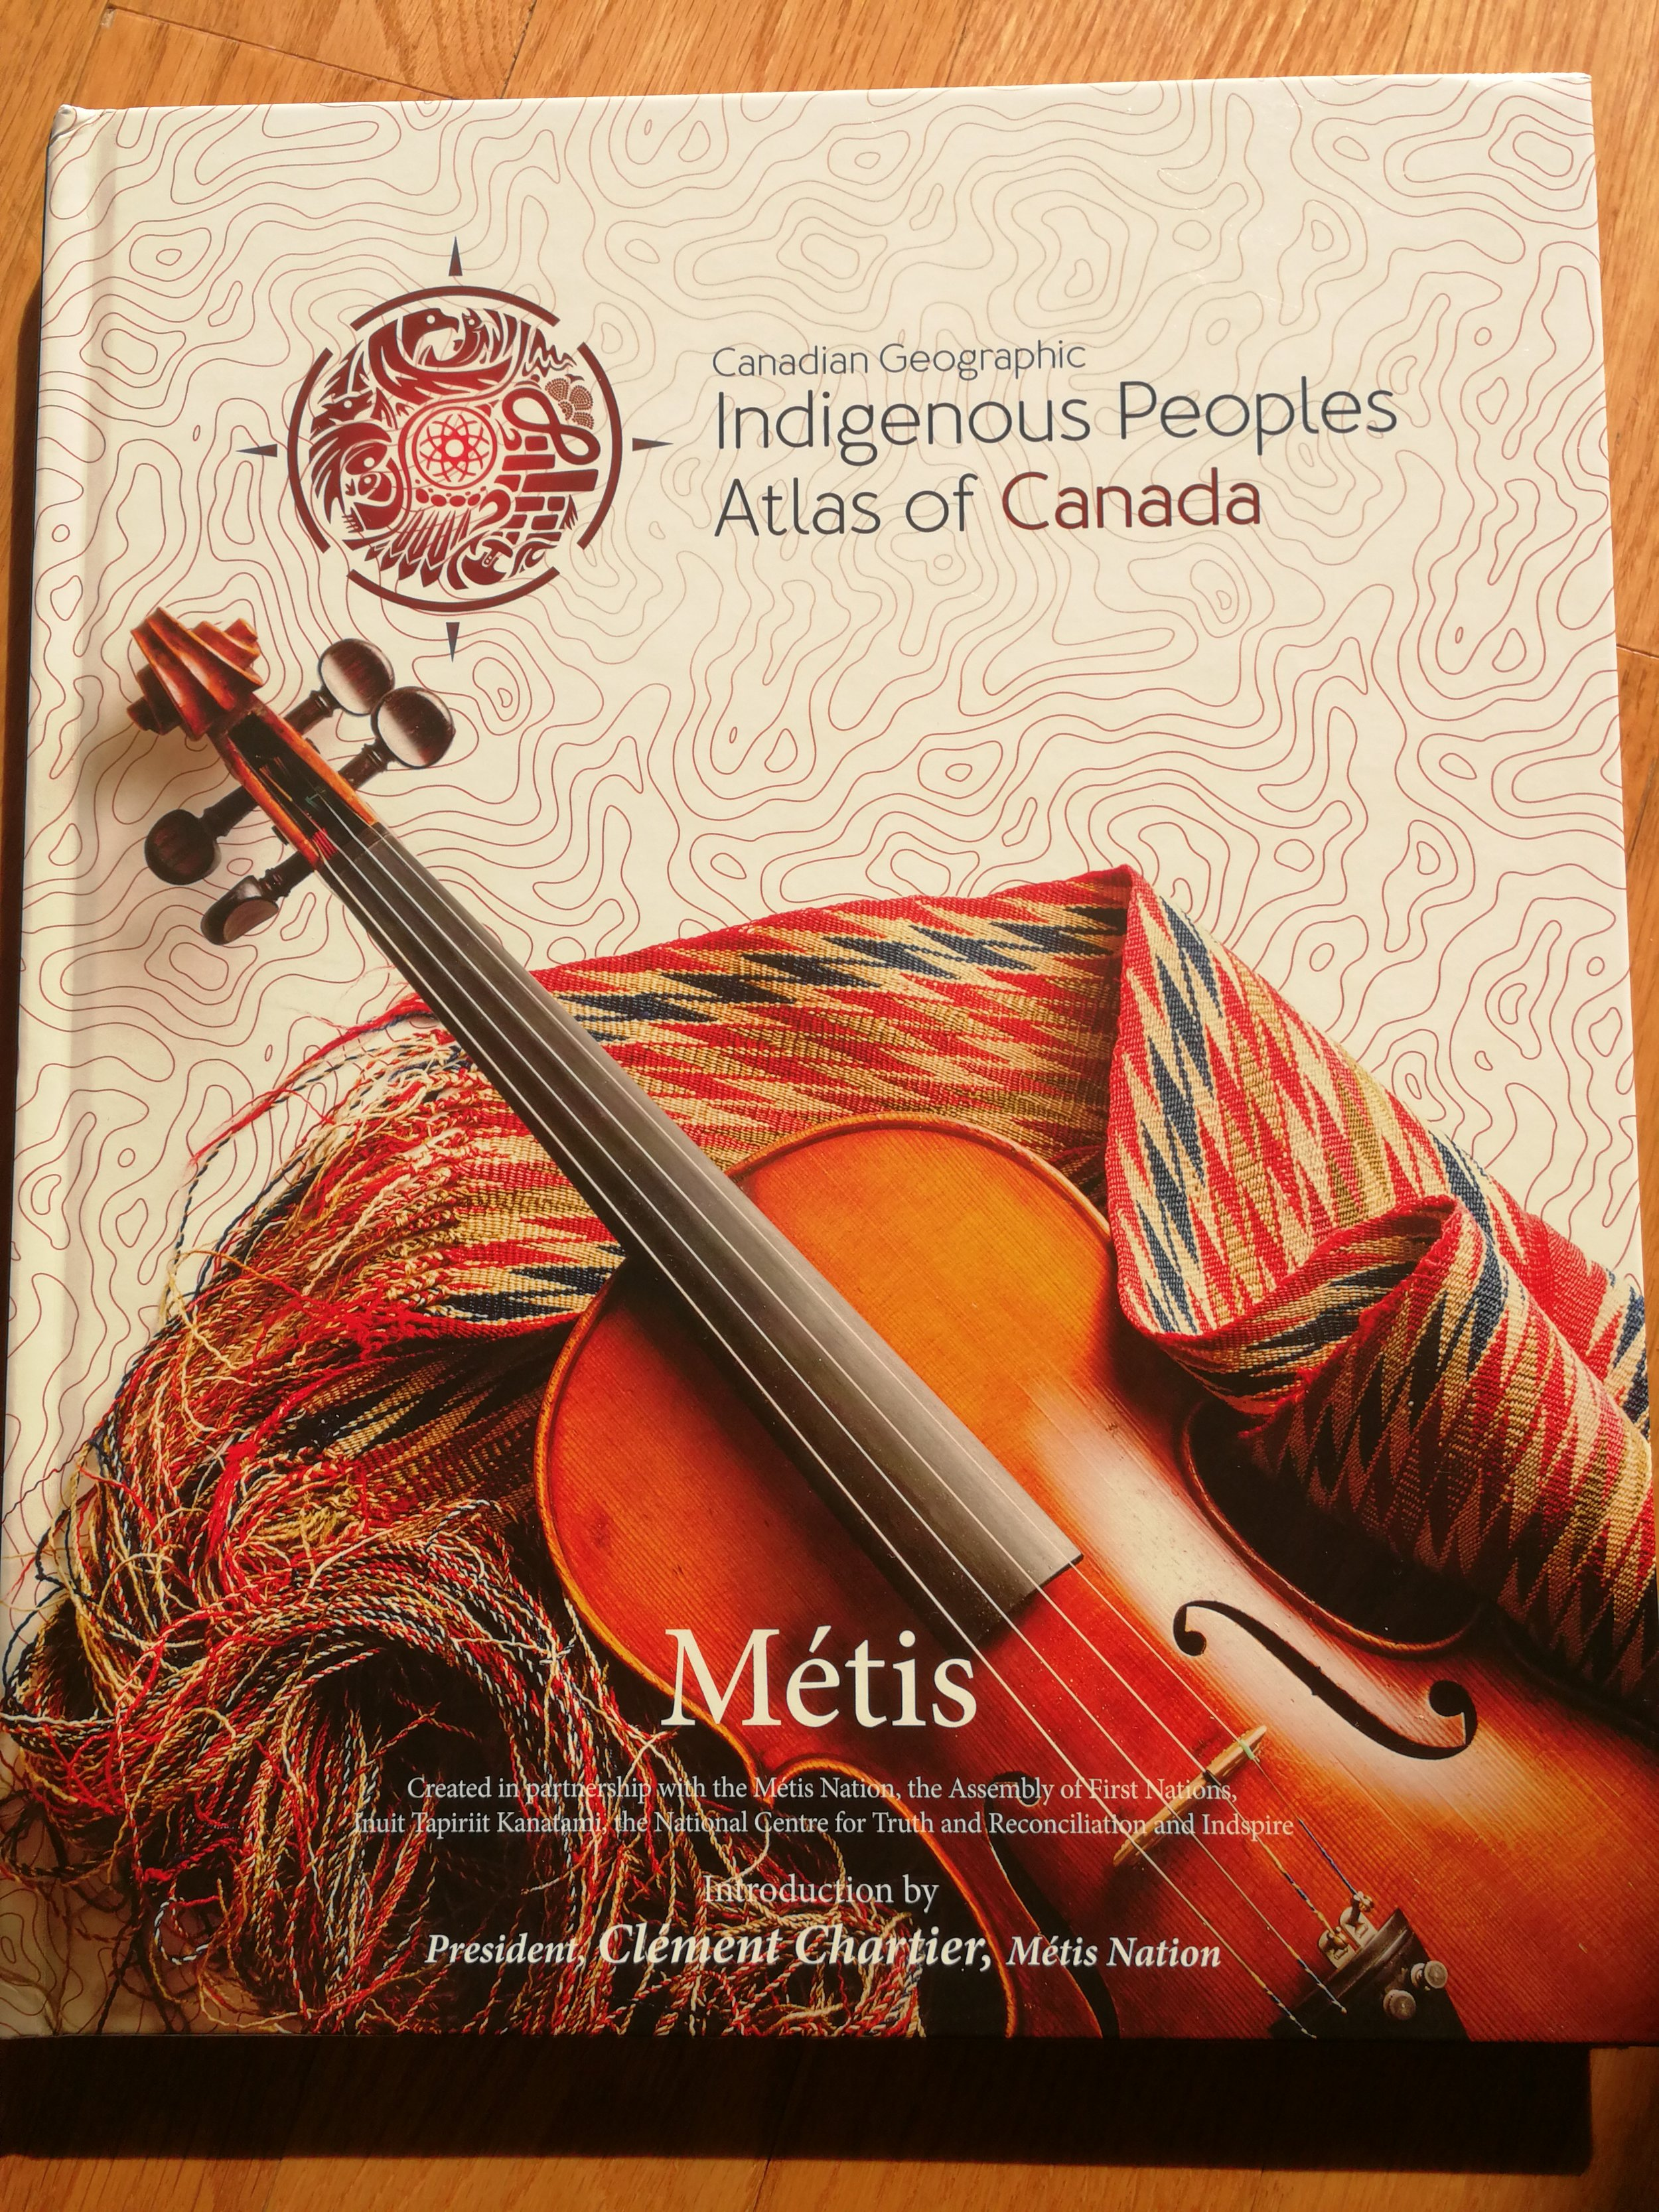 The cover of the volume on the Métis